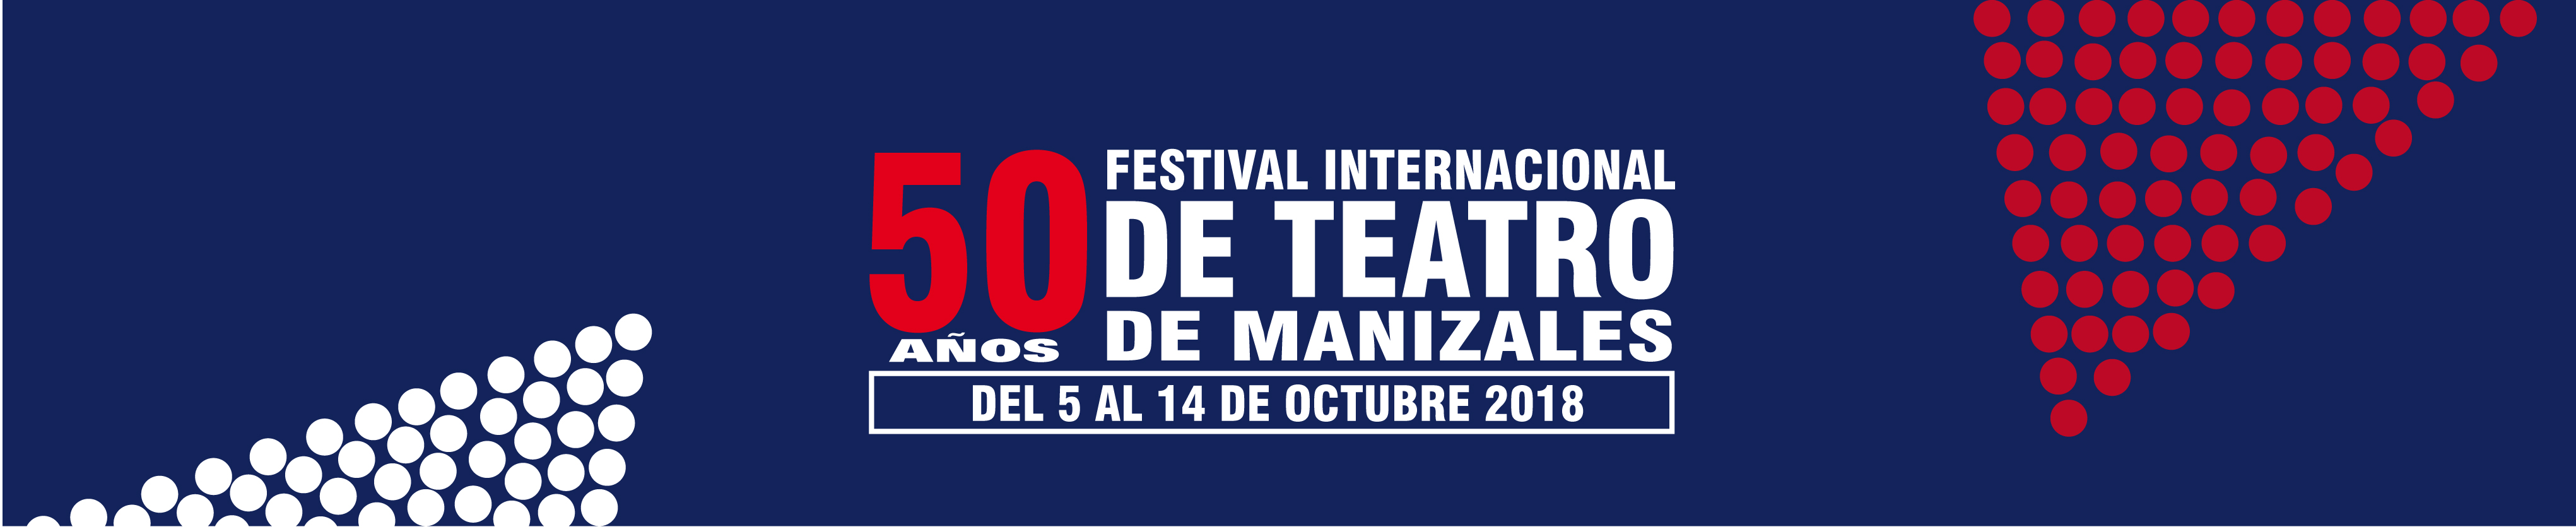 headerTeatro